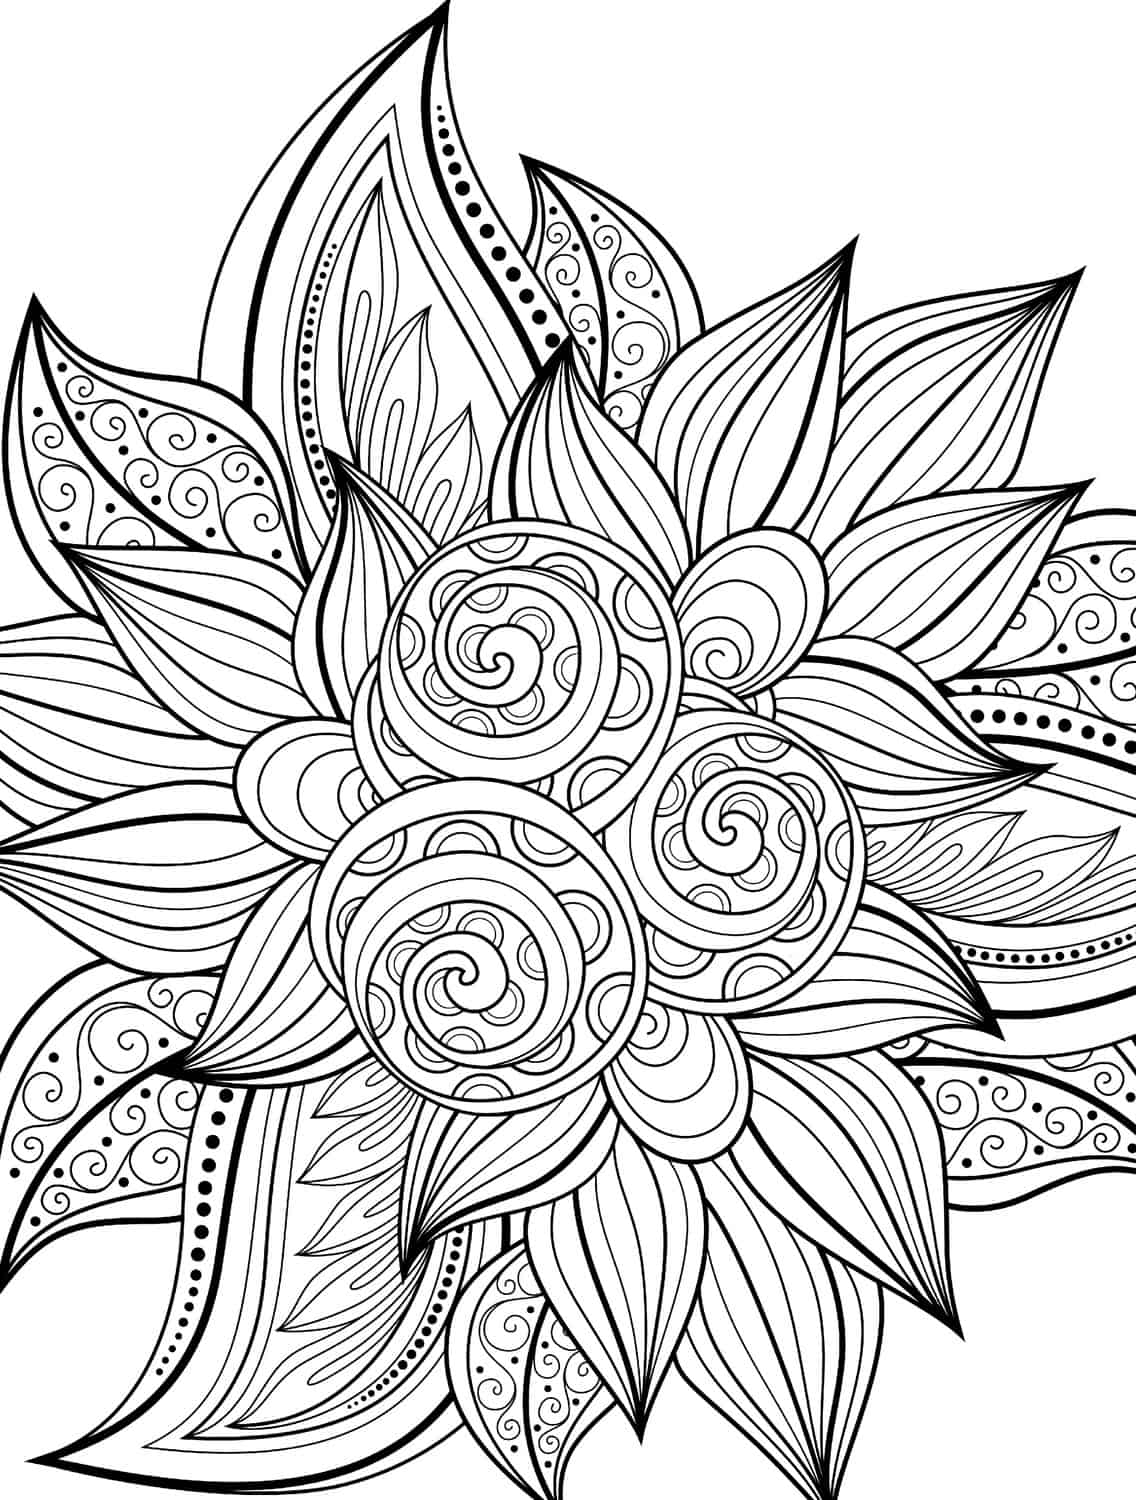 10 free printable holiday adult coloring pages Coloring books for 12 year olds